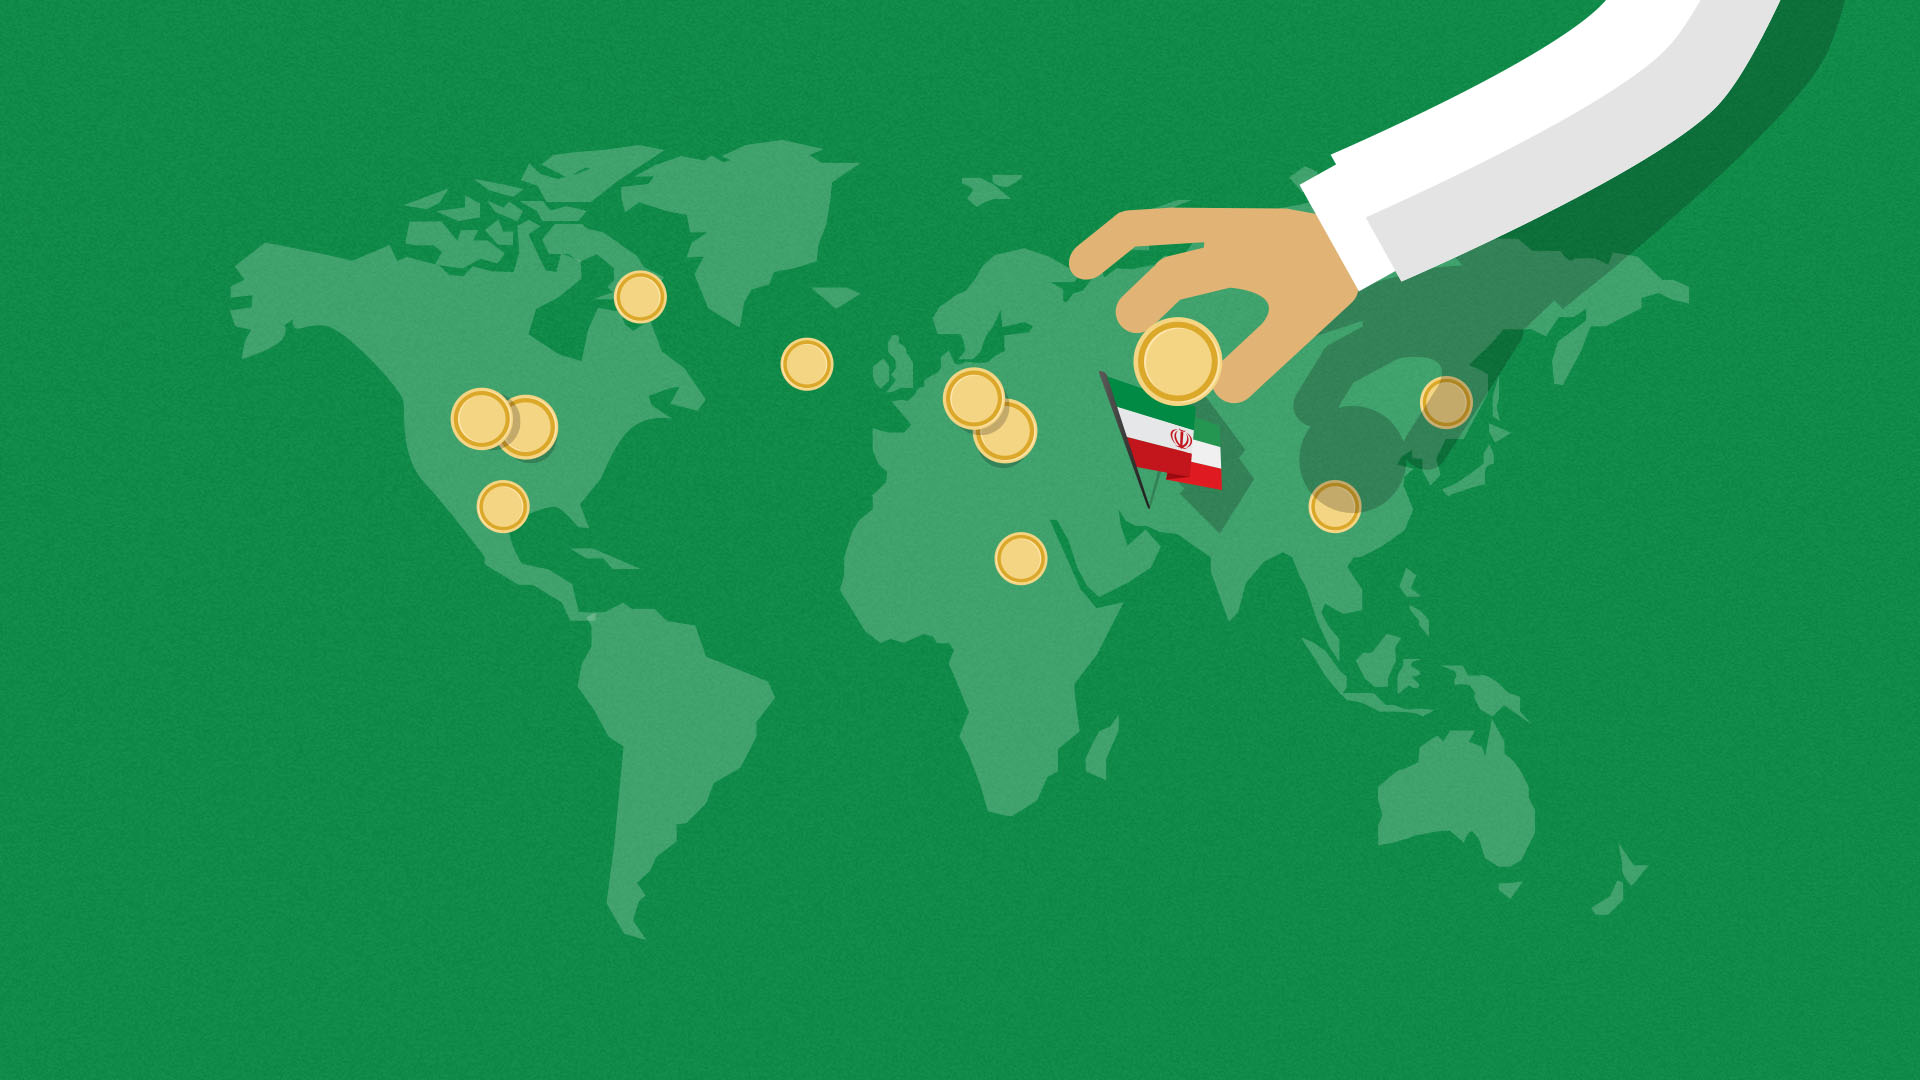 world map with hand placing coin near a flag symbolising Iran crypto mining